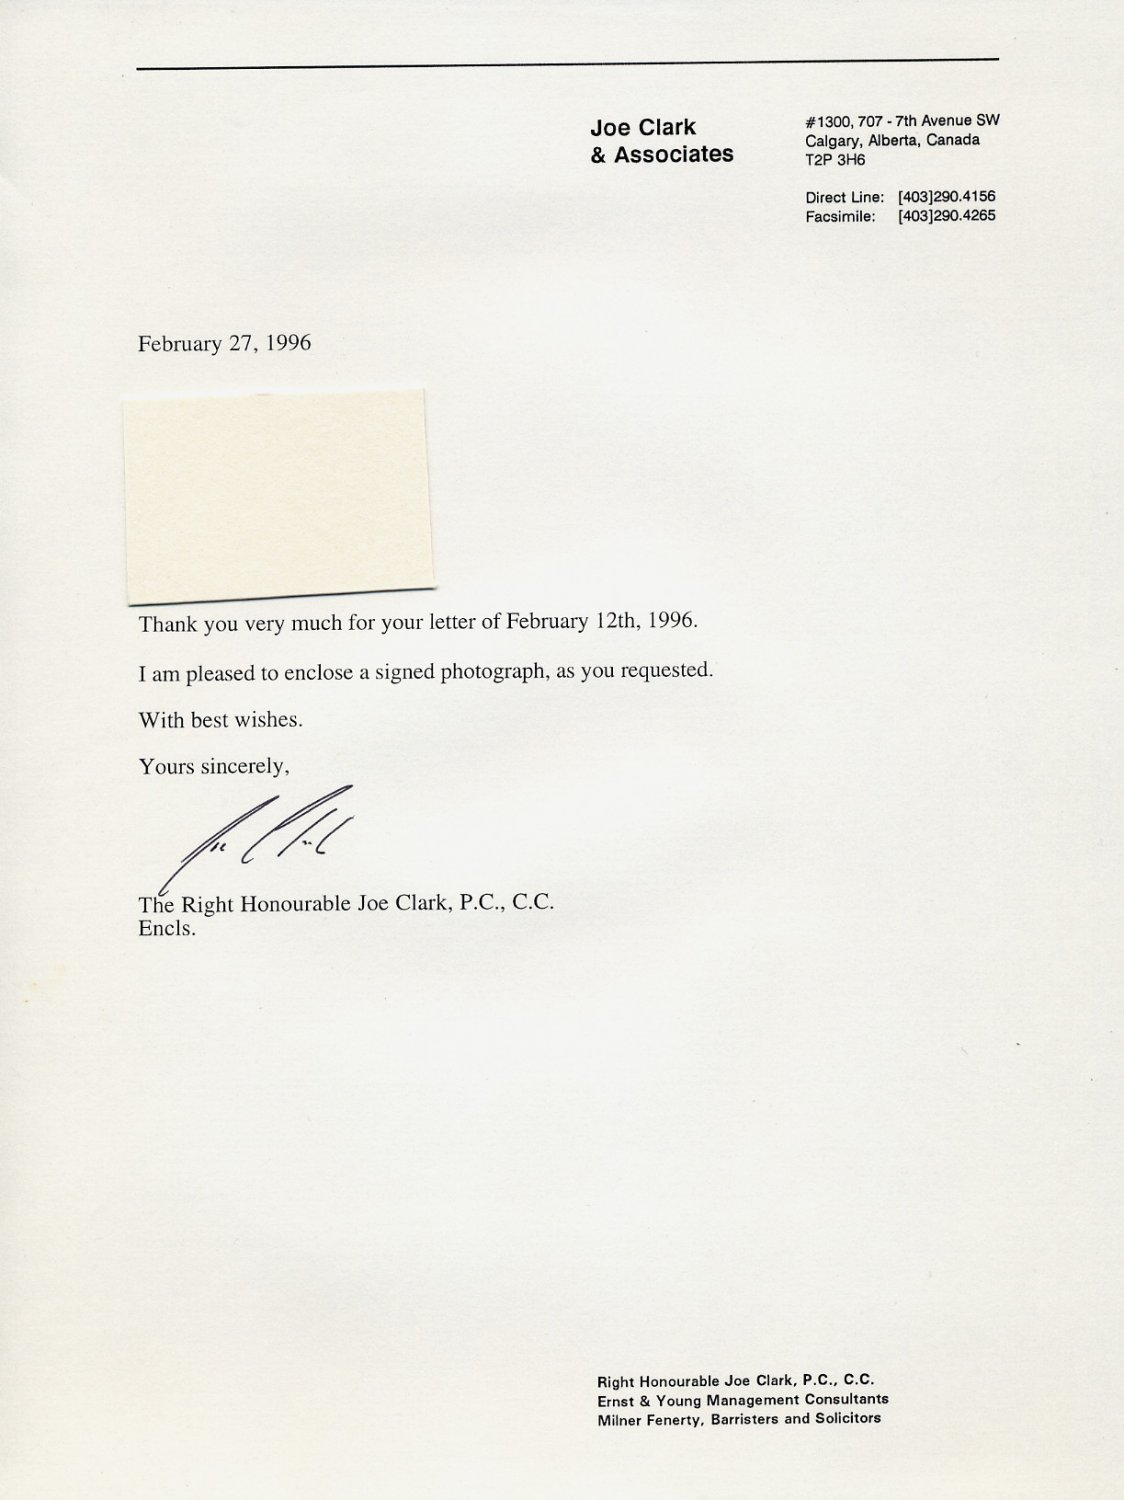 1979-80 Prime Minister of Canada JOE CLARK Typed Letter Signed 1996